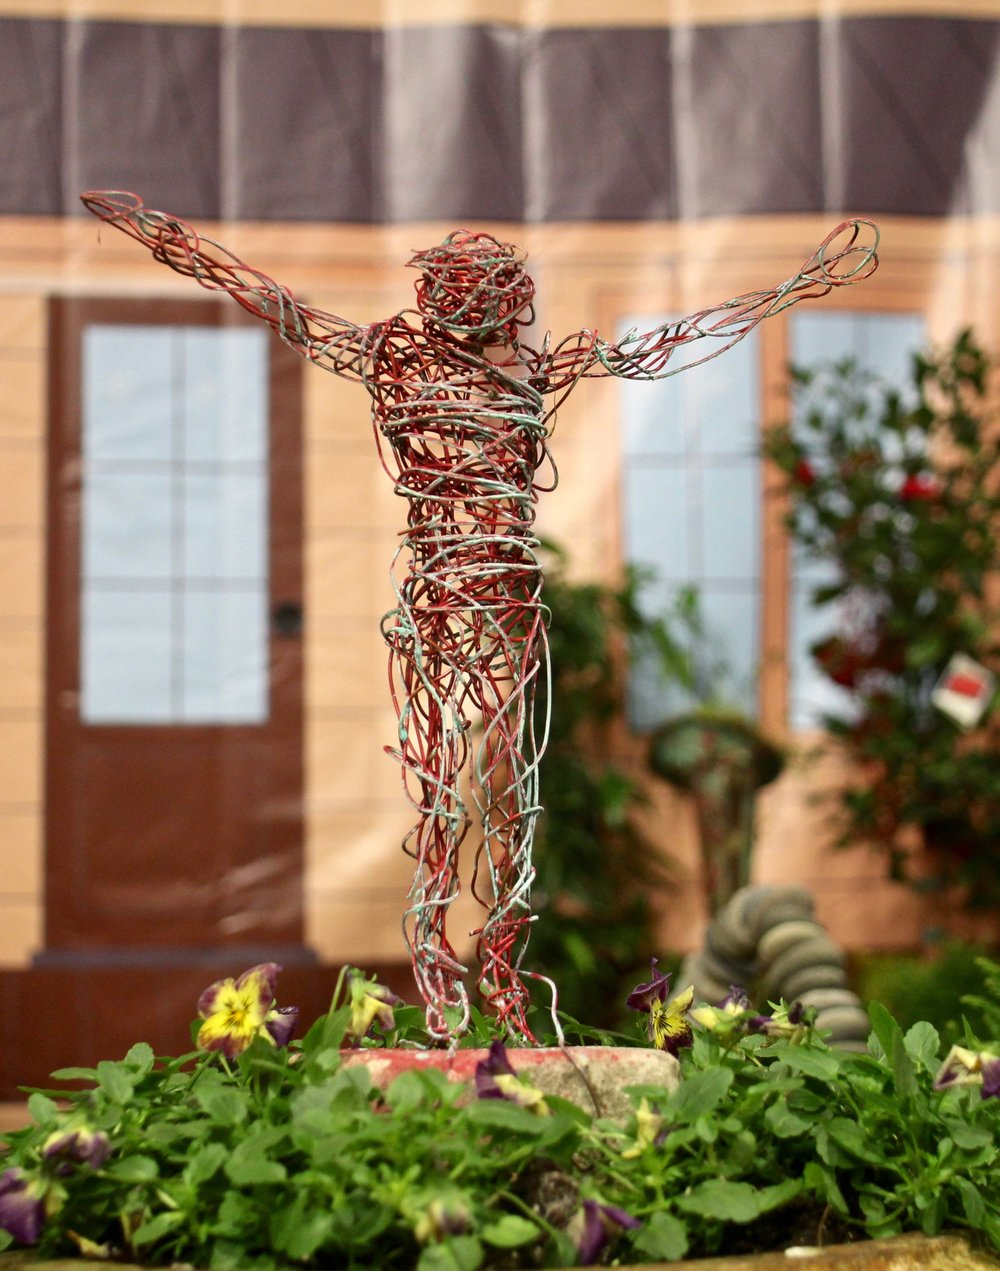 """Little Rock Land Design included this wire sculpture in the impromptu landscape it created in front of one of four vinyl """"house fronts"""" for the Landscape Challenge in Barton Coliseum during the 2018 Arkansas Flower and Garden Show on the Arkansas State Fairgrounds. Photo by Celia Storey"""